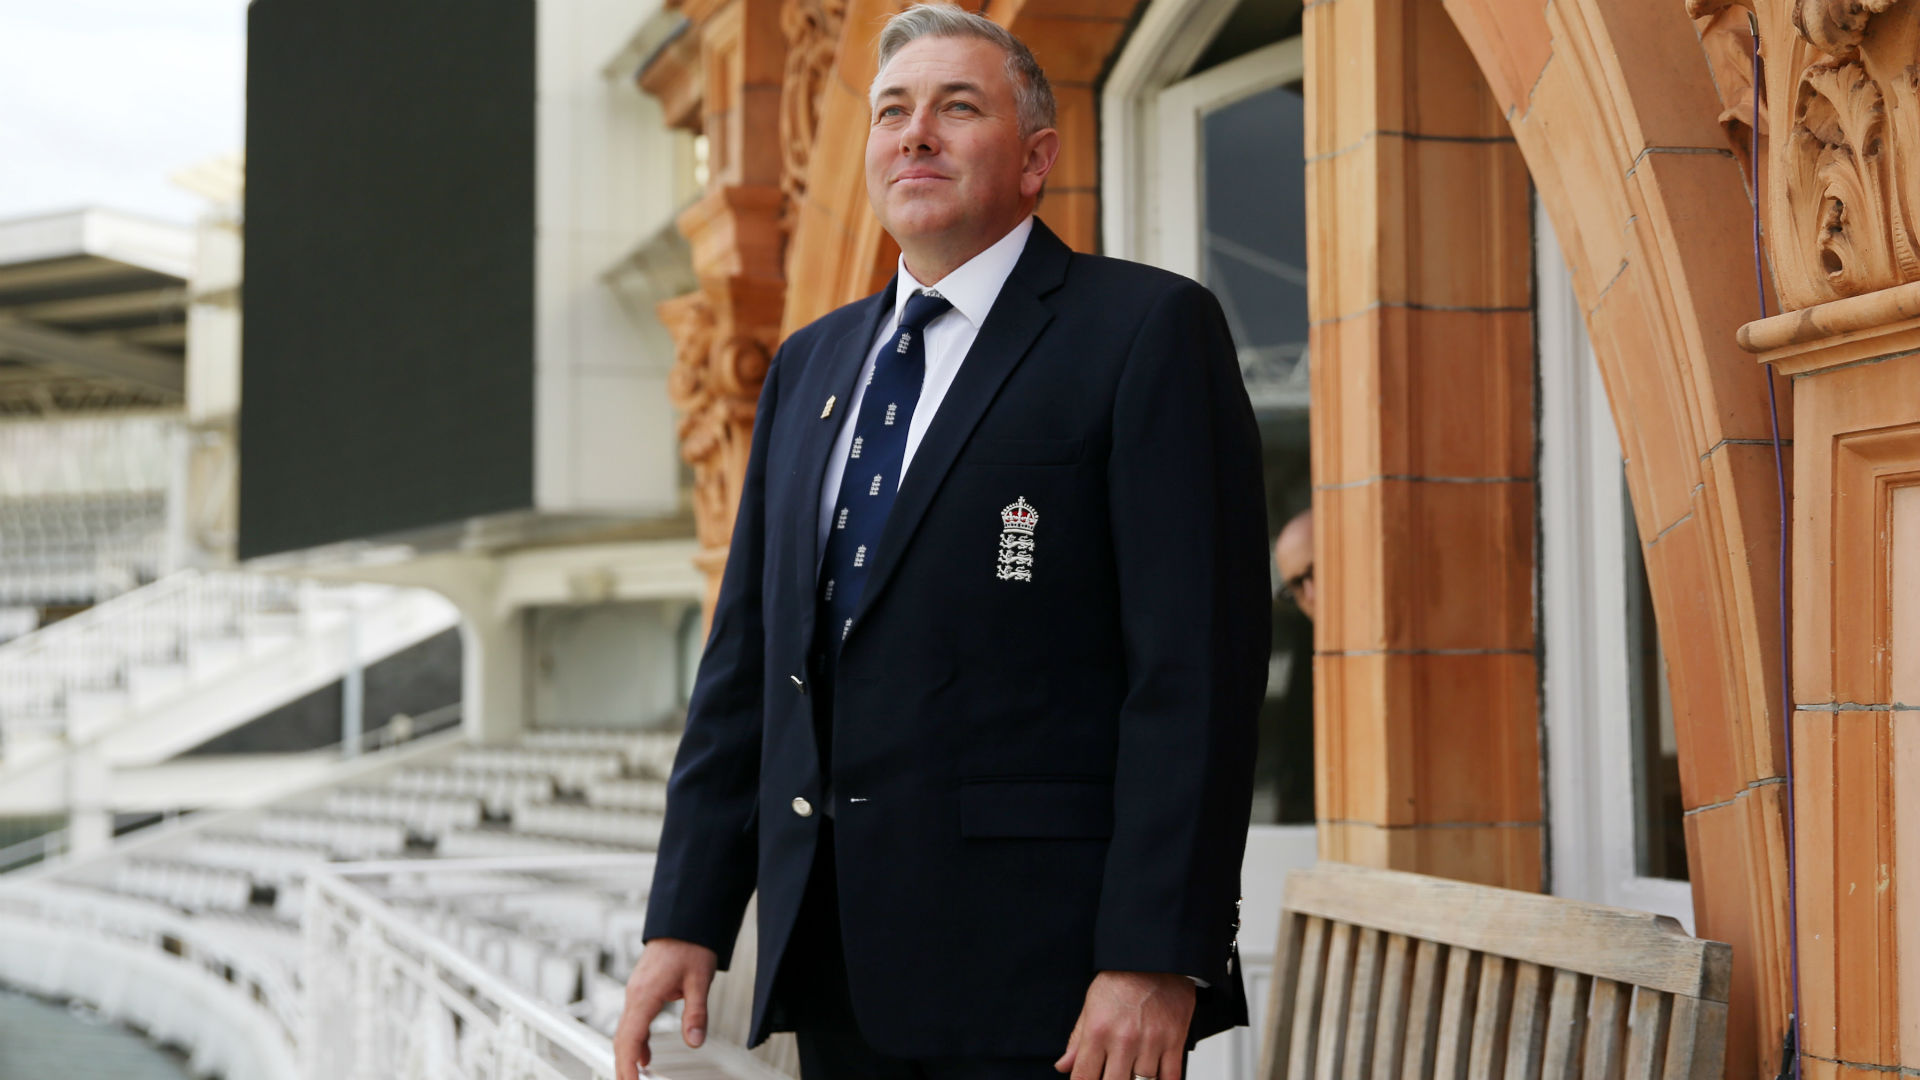 Silverwood to build on white-ball success as England target Test improvements